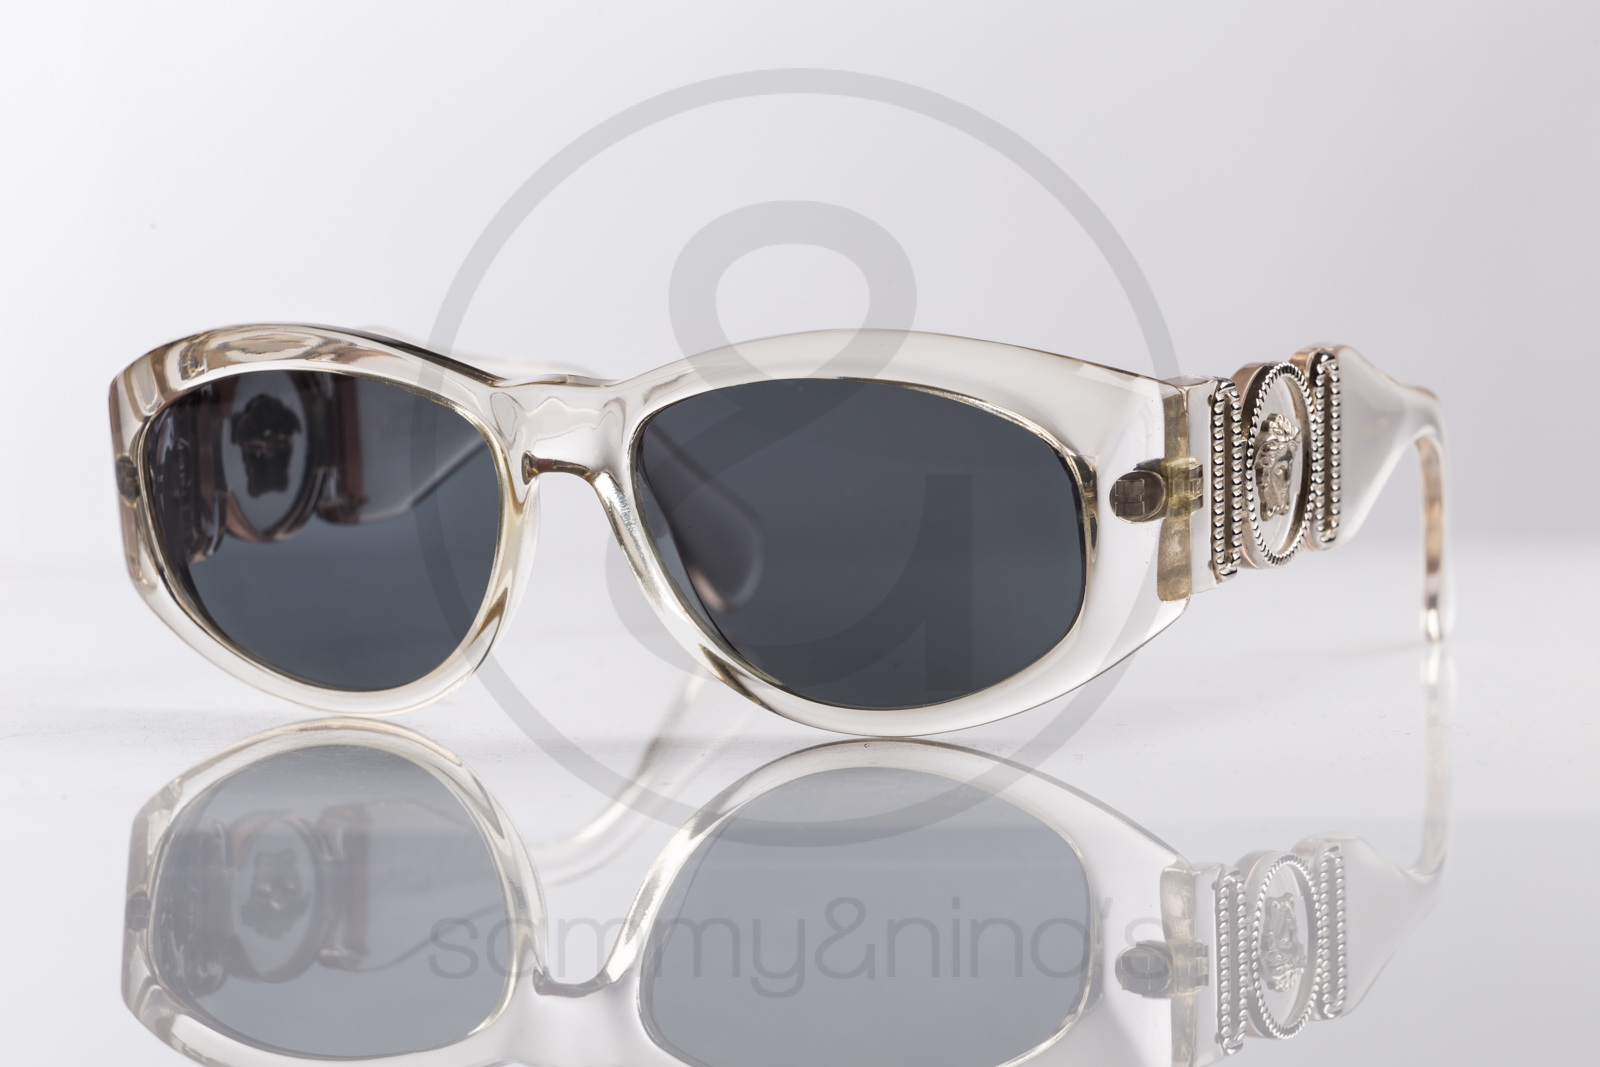 Clear Frame Versace Glasses : Gianni Versace 424/B 924 Sammy & Ninos Store